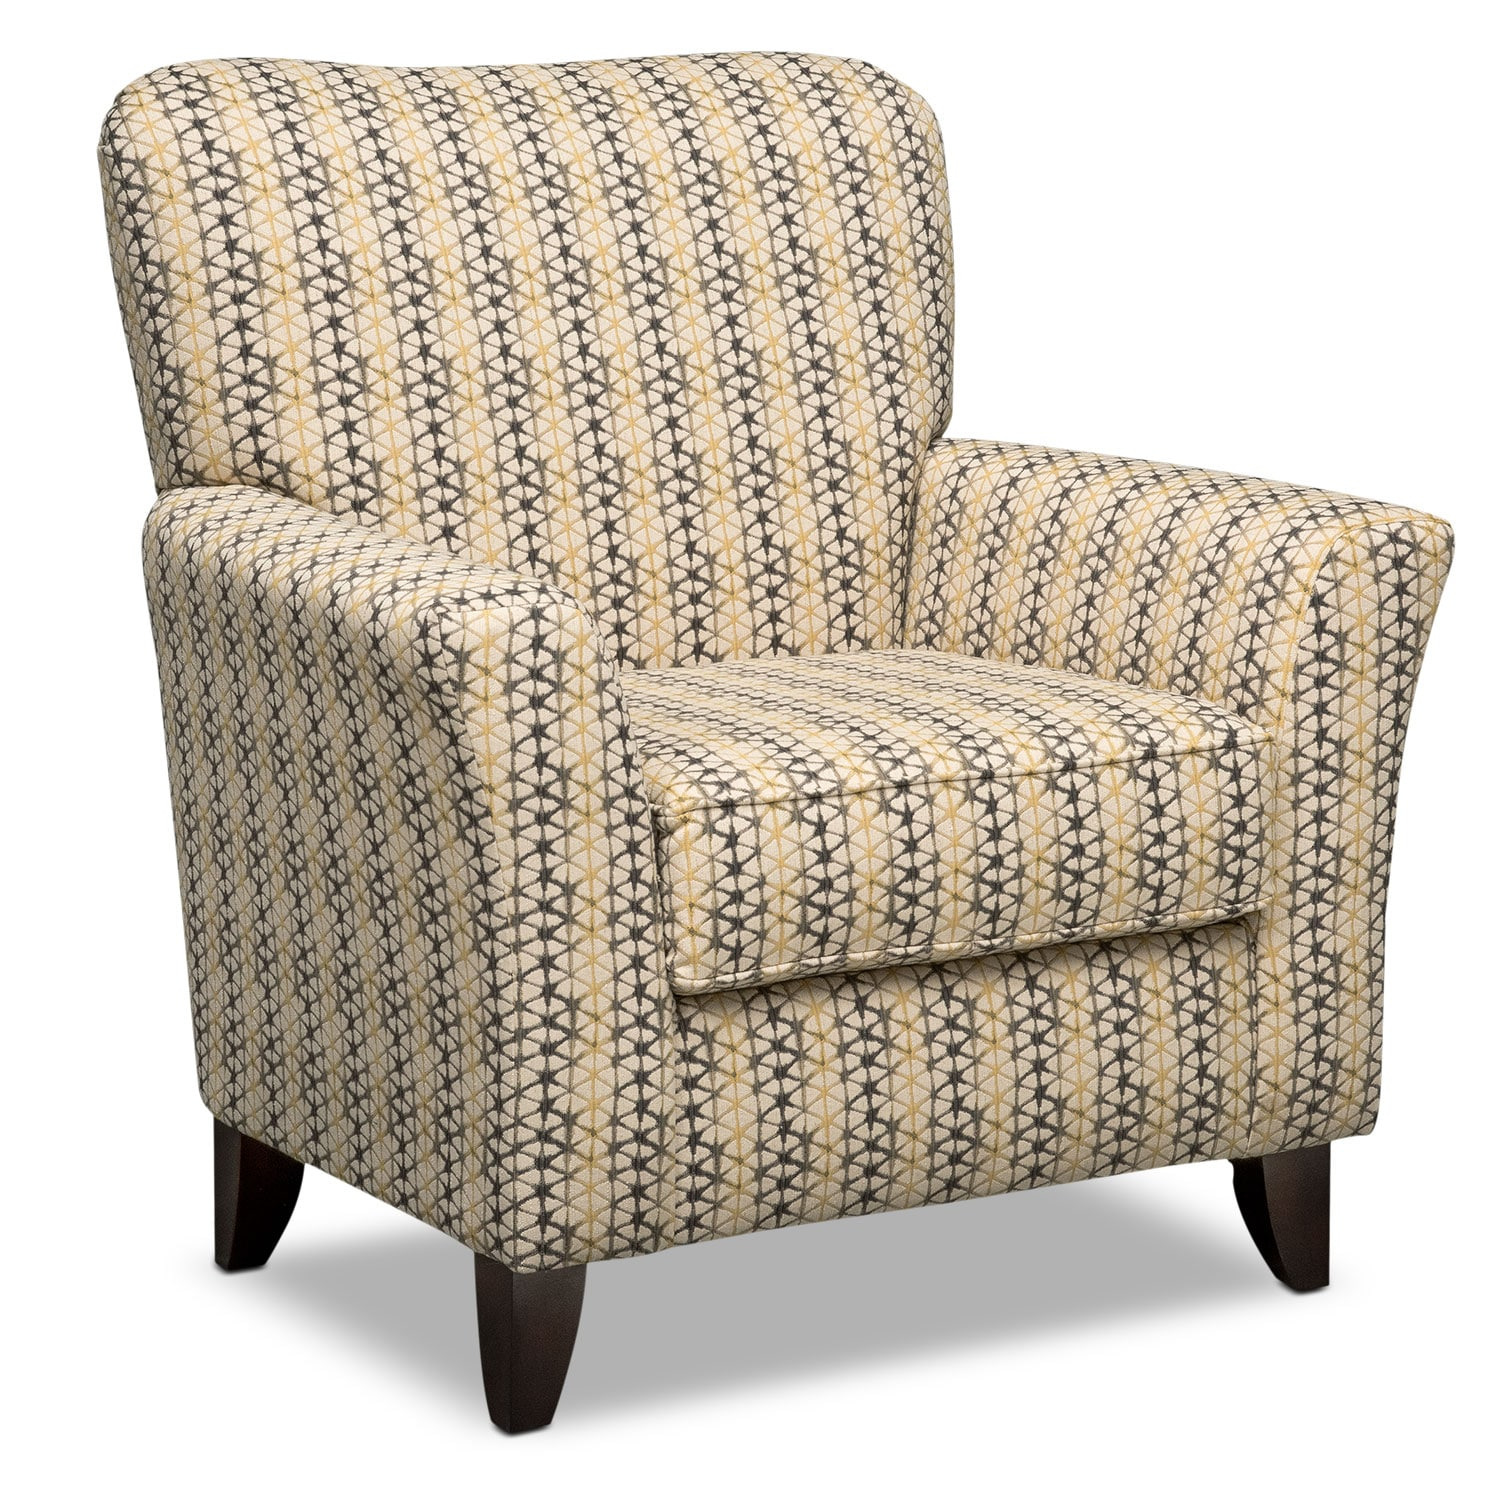 Bryden Accent Chair - Beige